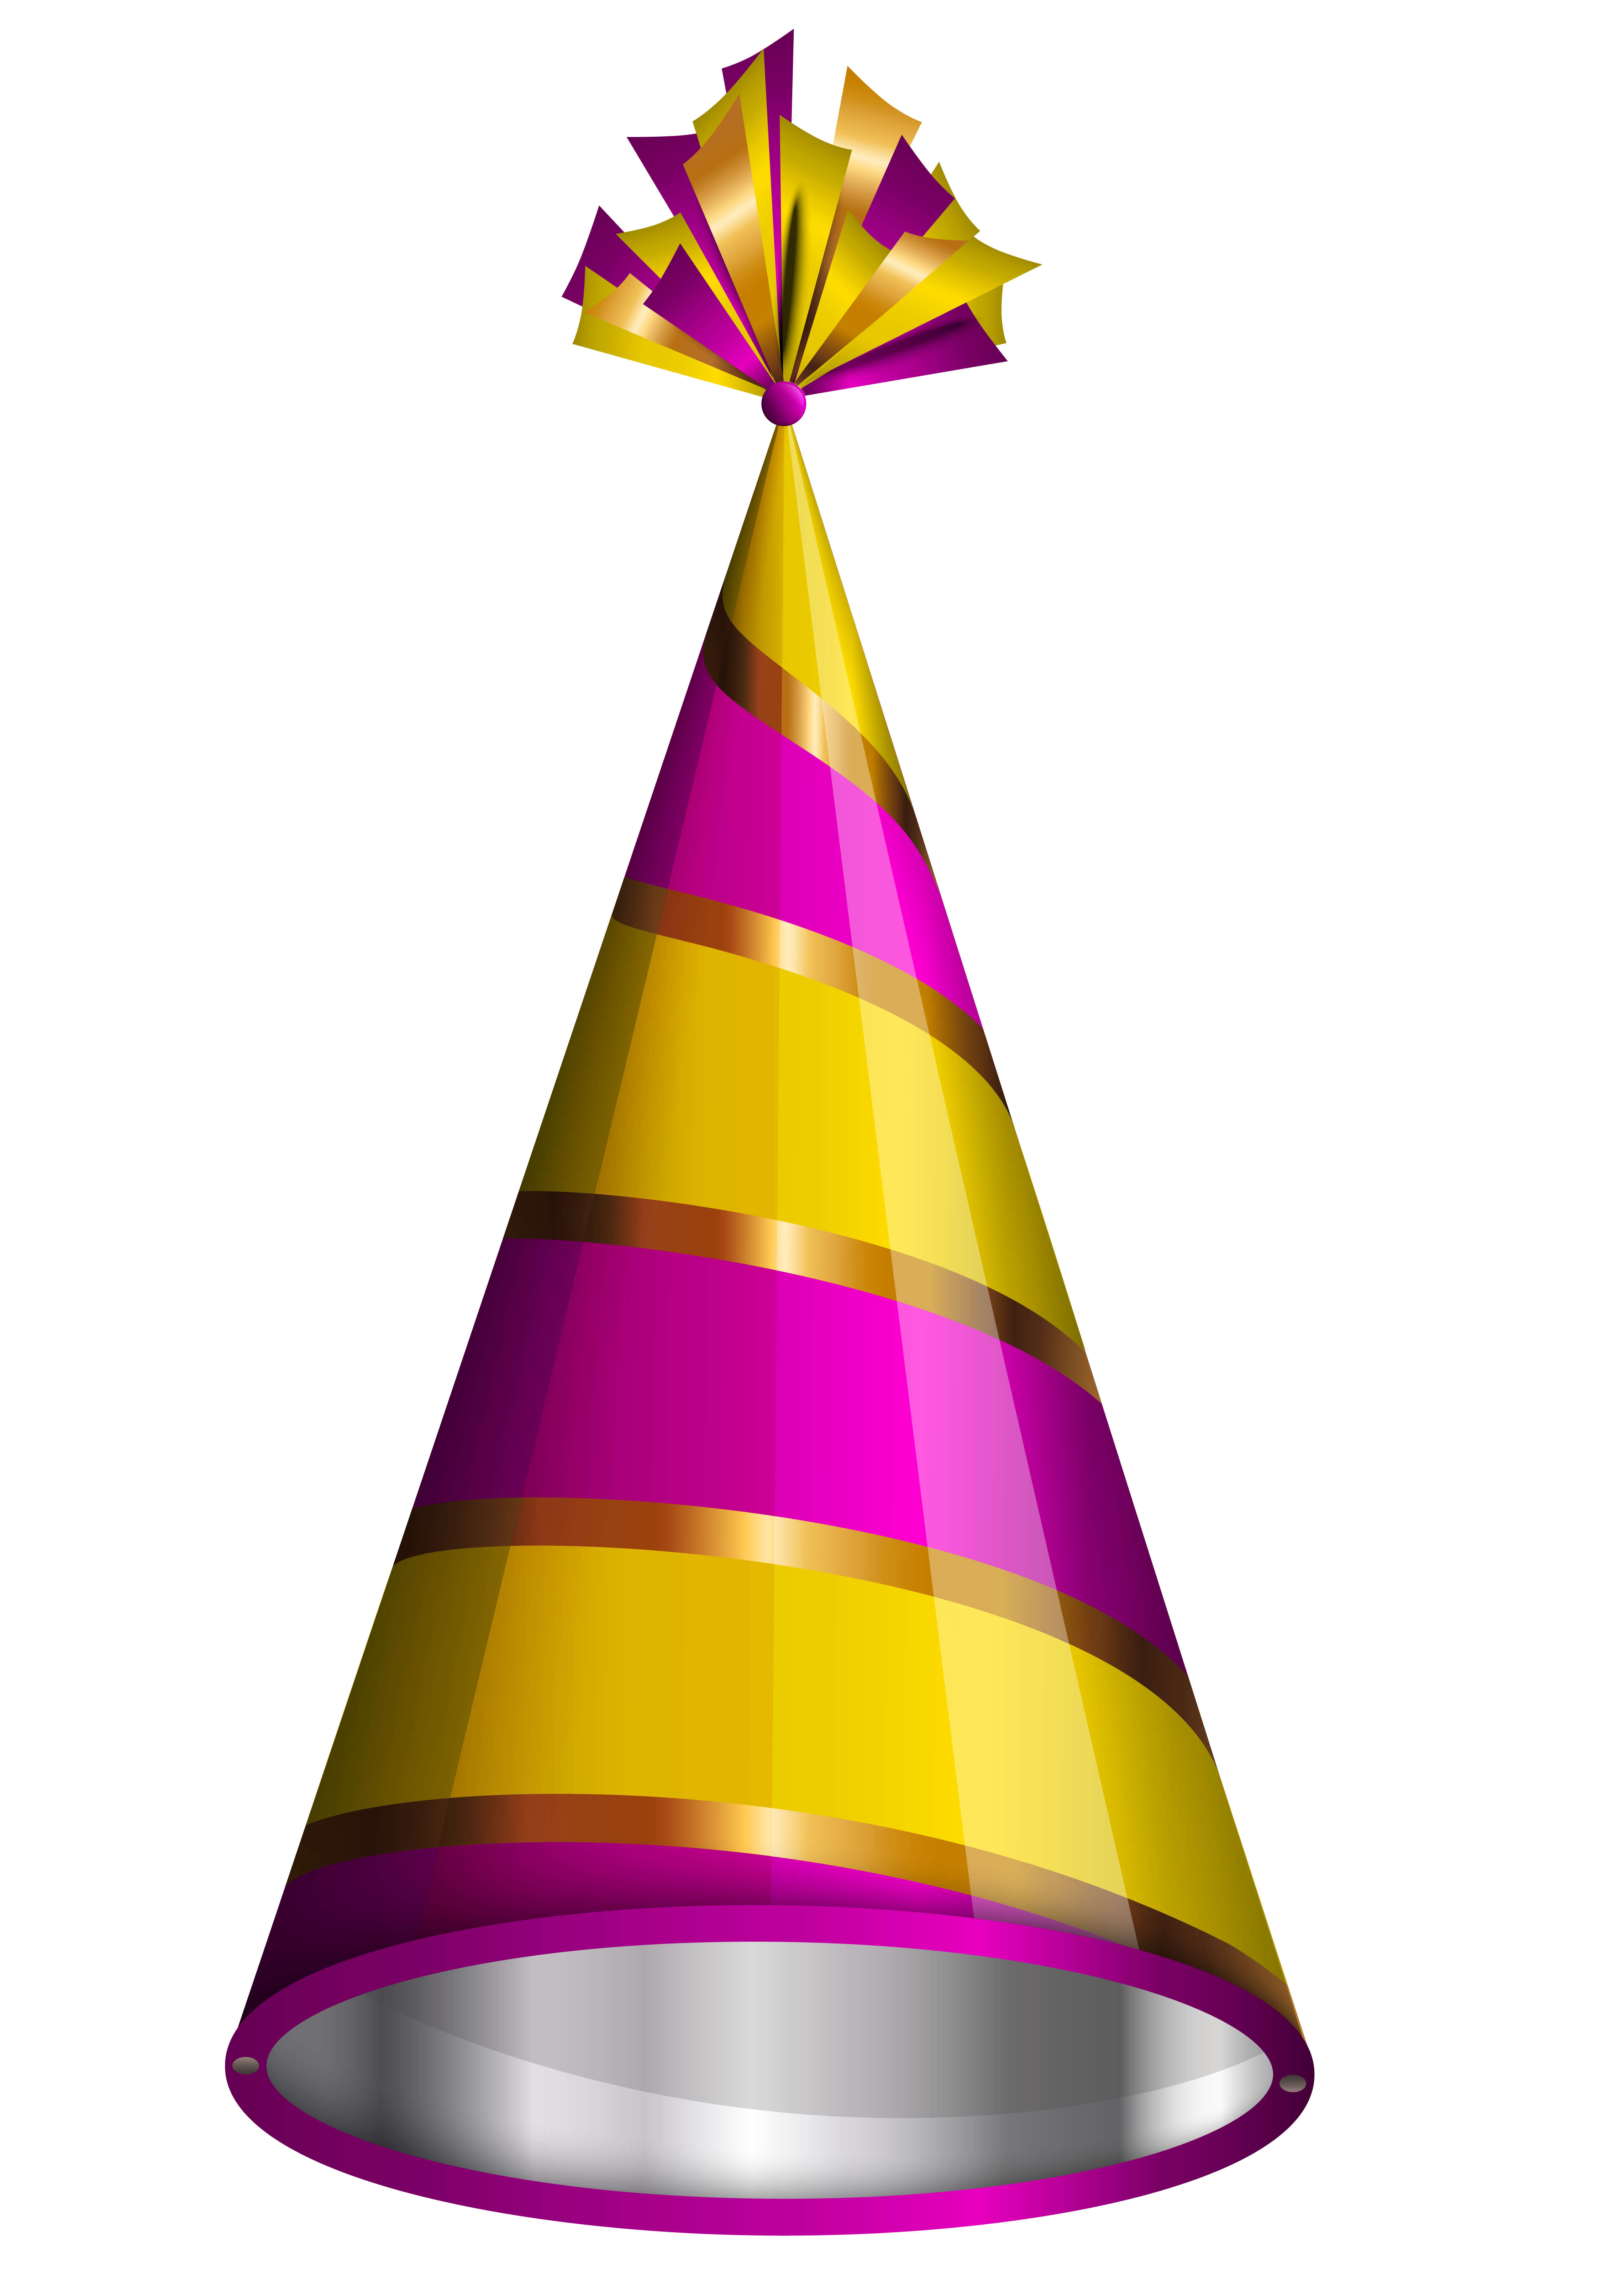 Party hat png image. Horn clipart birthday